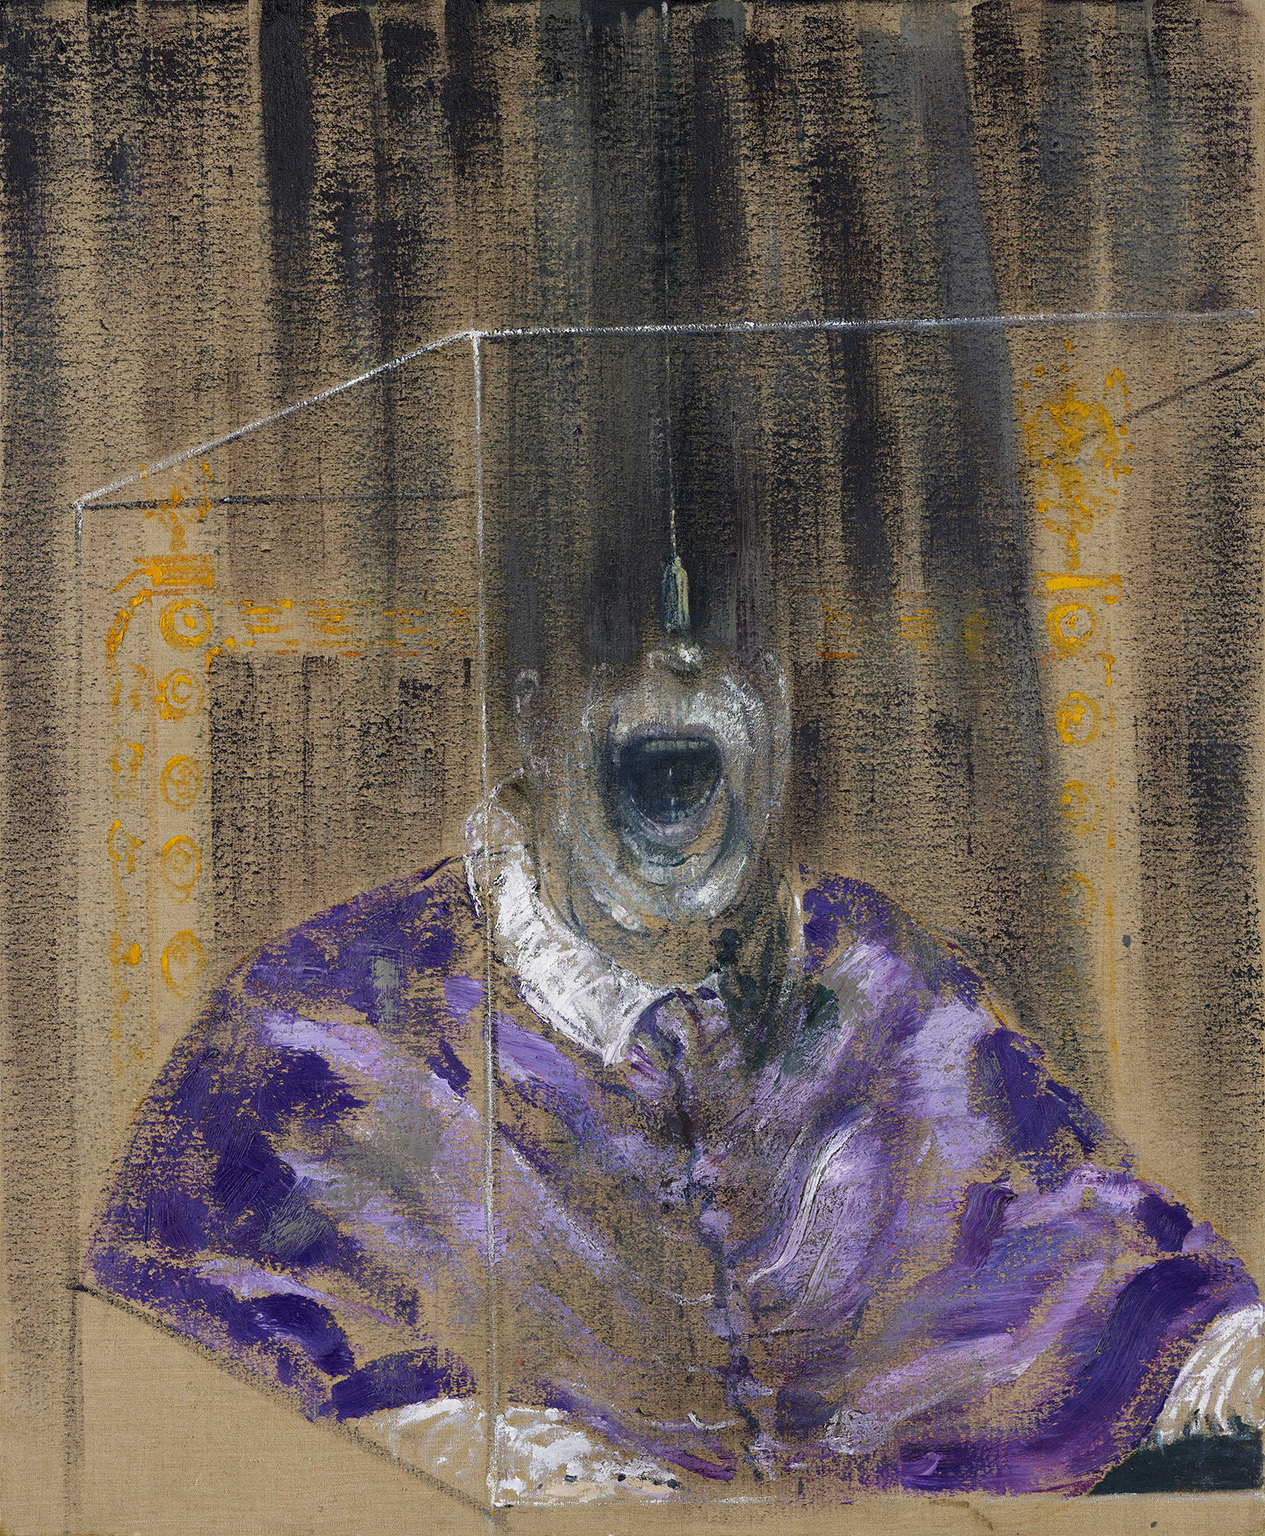 Francis Bacon, Head VI, 1949. Oil on canvas, 91.4 x 76.2 cm. Arts Council Collection, London © The Estate of Francis Bacon. All rights reserved, DACS/Artimage 2020. Photo: Prudence Cuming Associates Ltd